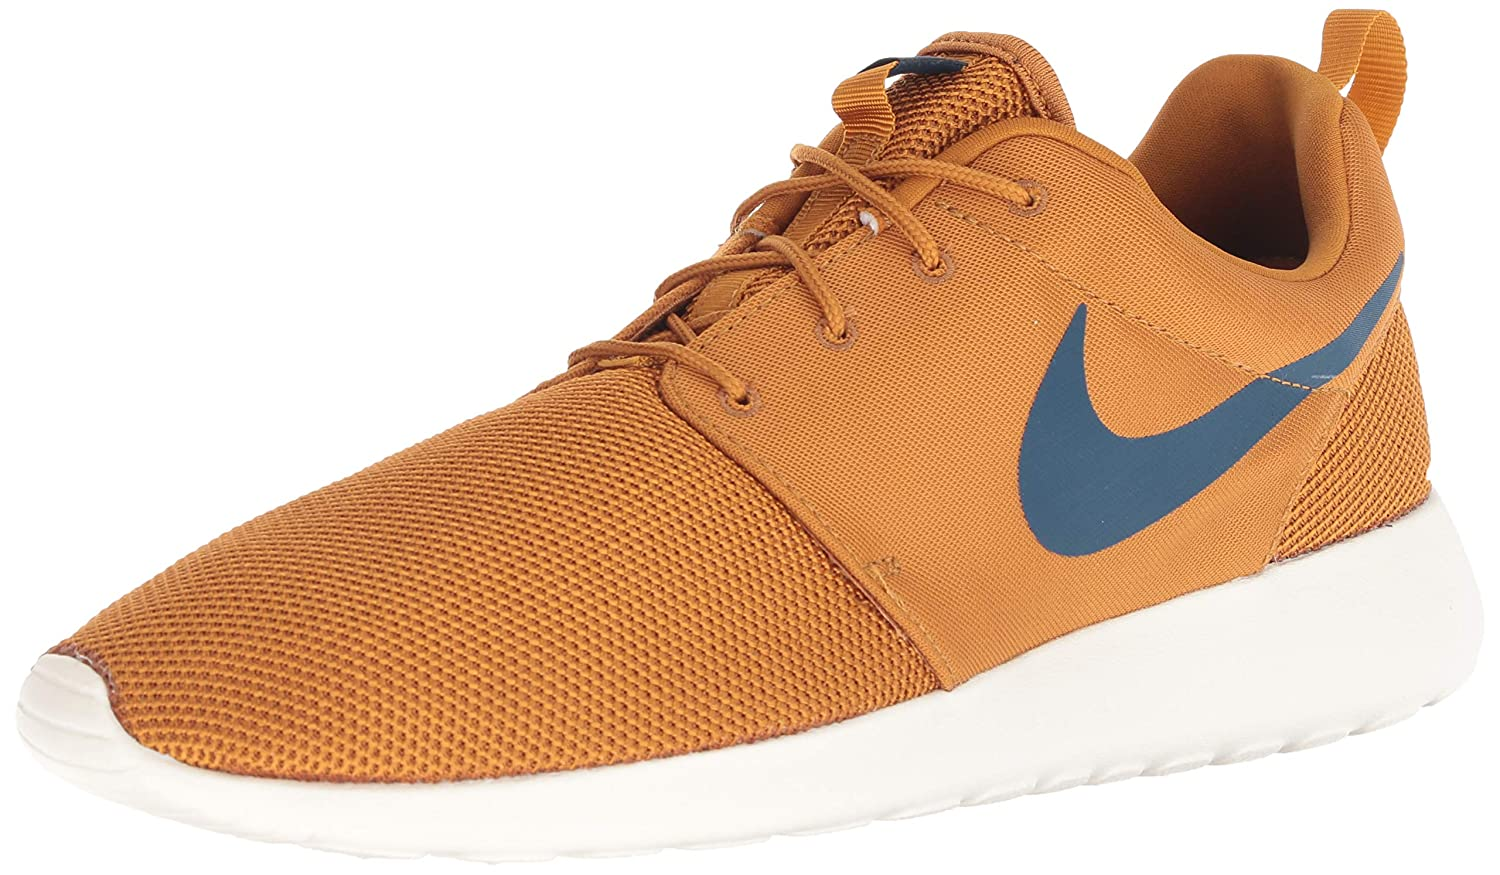 Nike Mens Roshe One Desert OchreBlue Force Sail 511881 700 (9.5 D US)